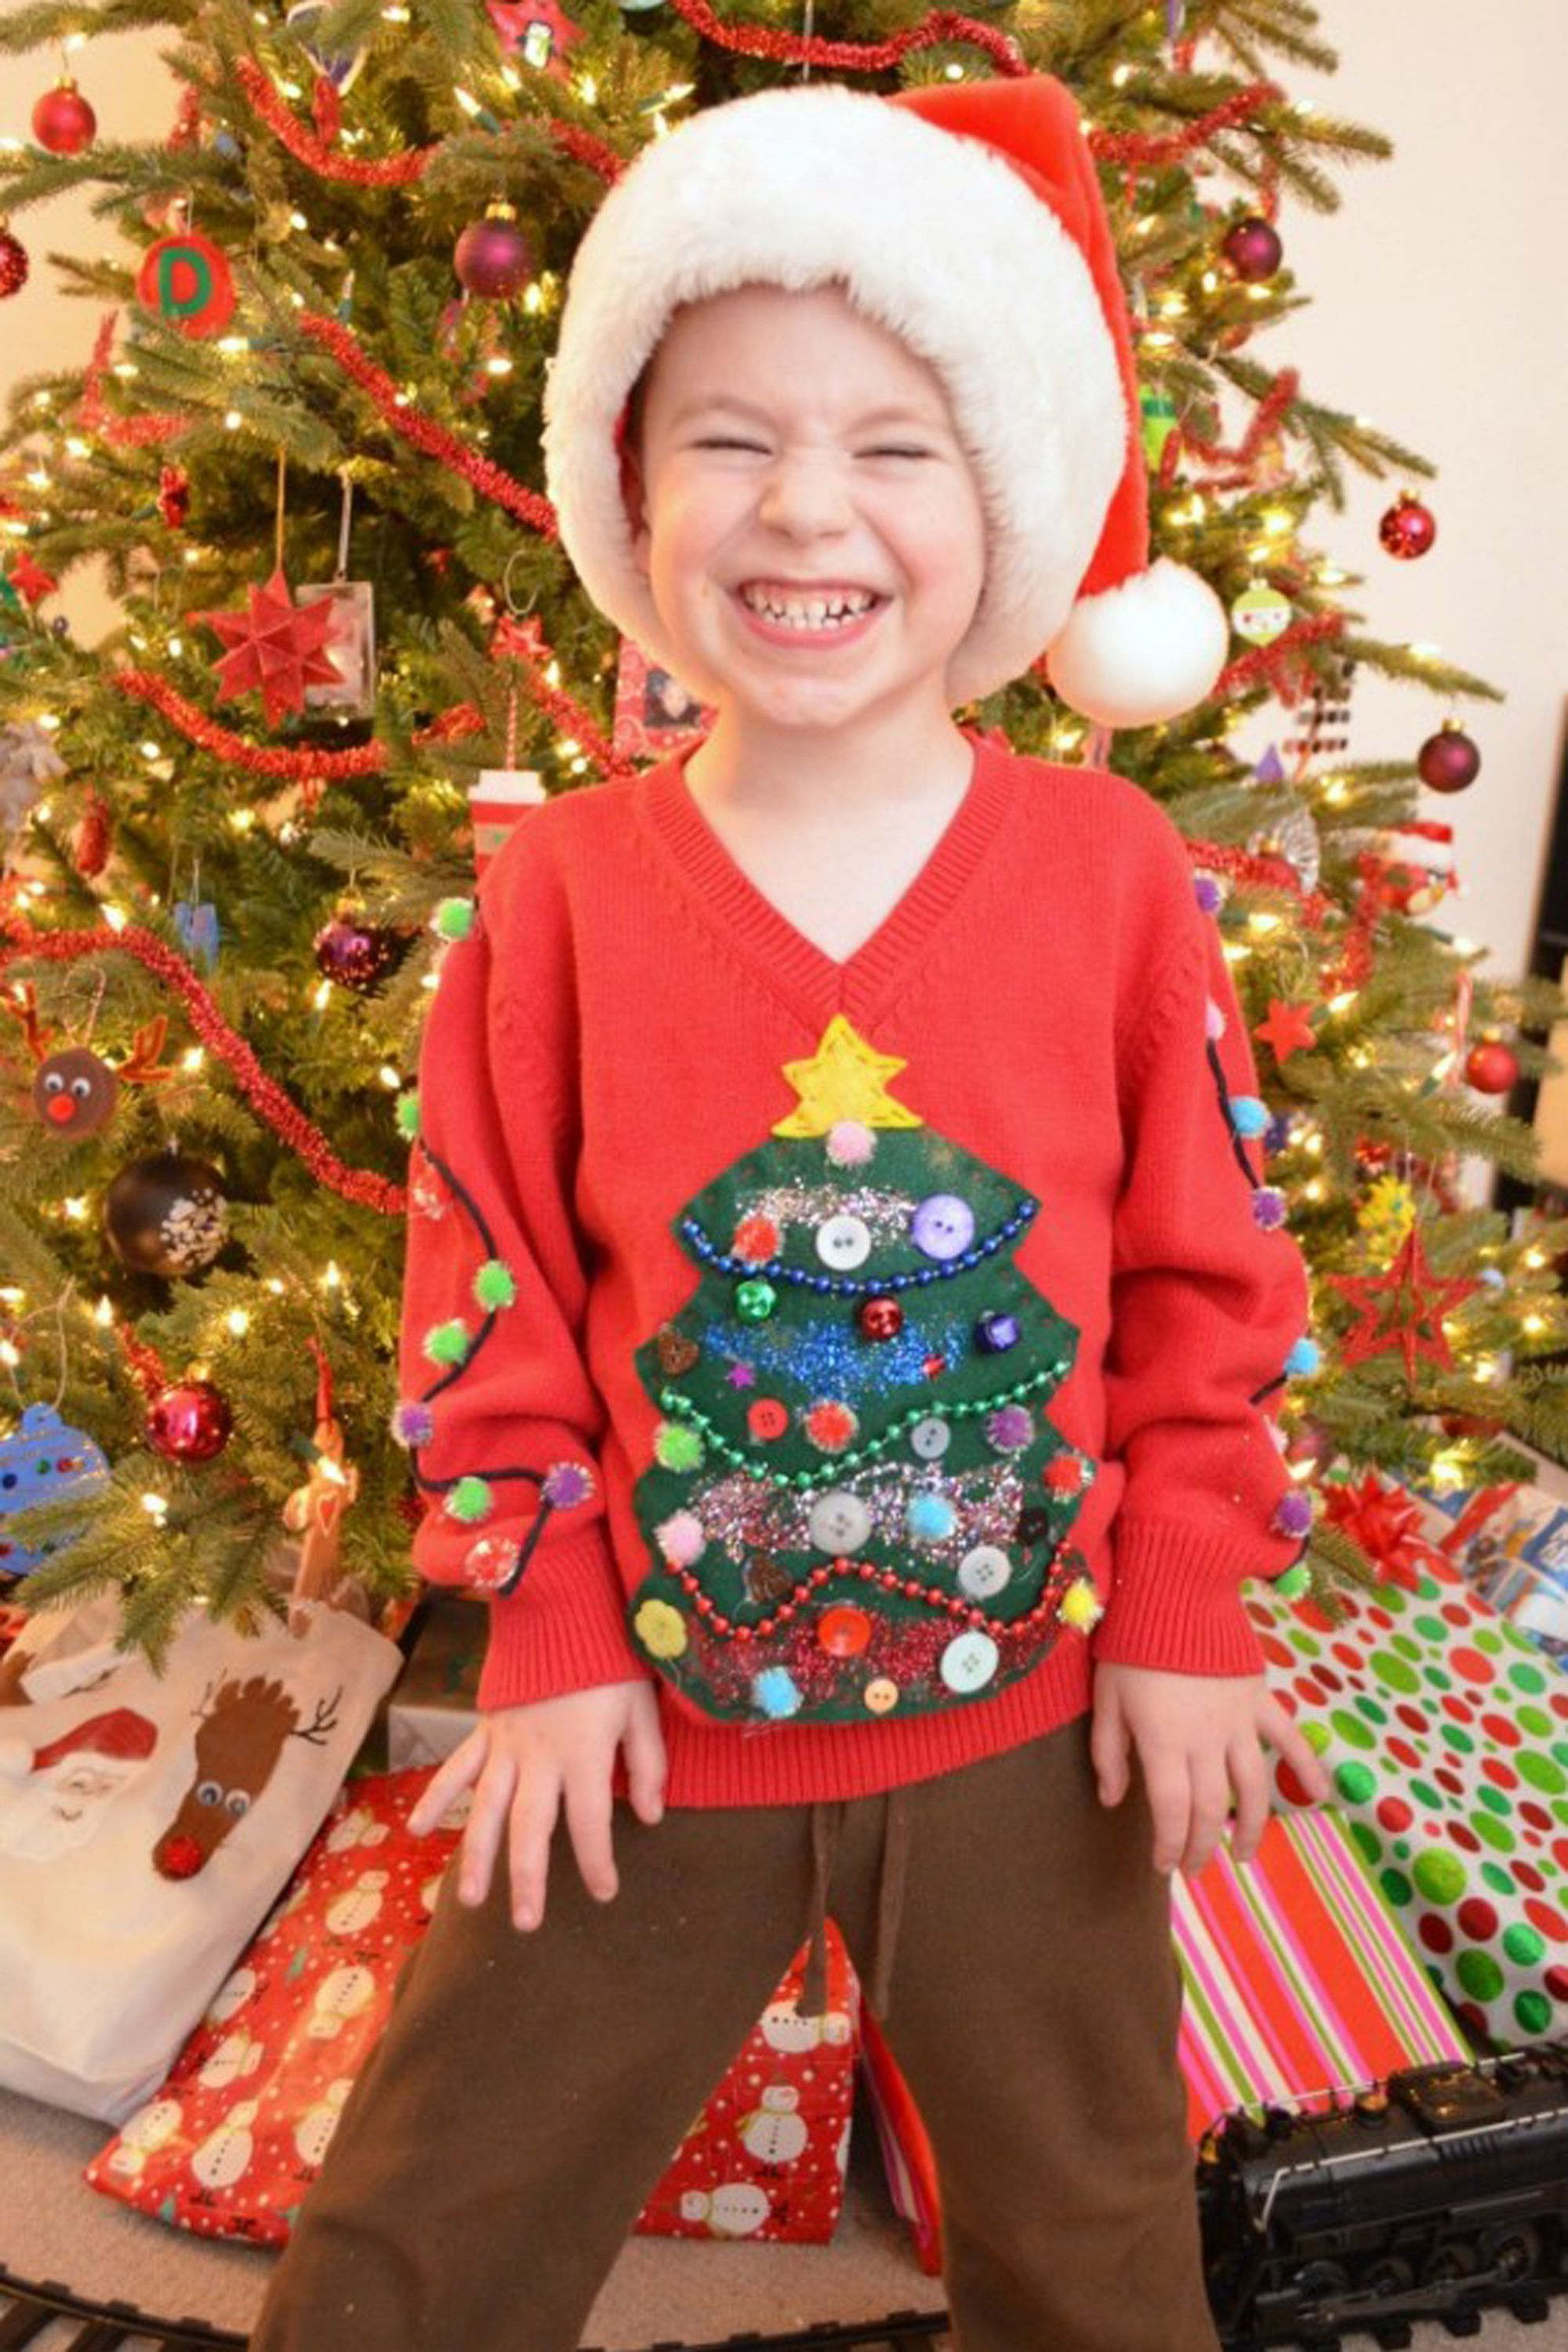 Best DIY Ugly Christmas Sweater Ideas - Ugly Christmas Sweater DIYs